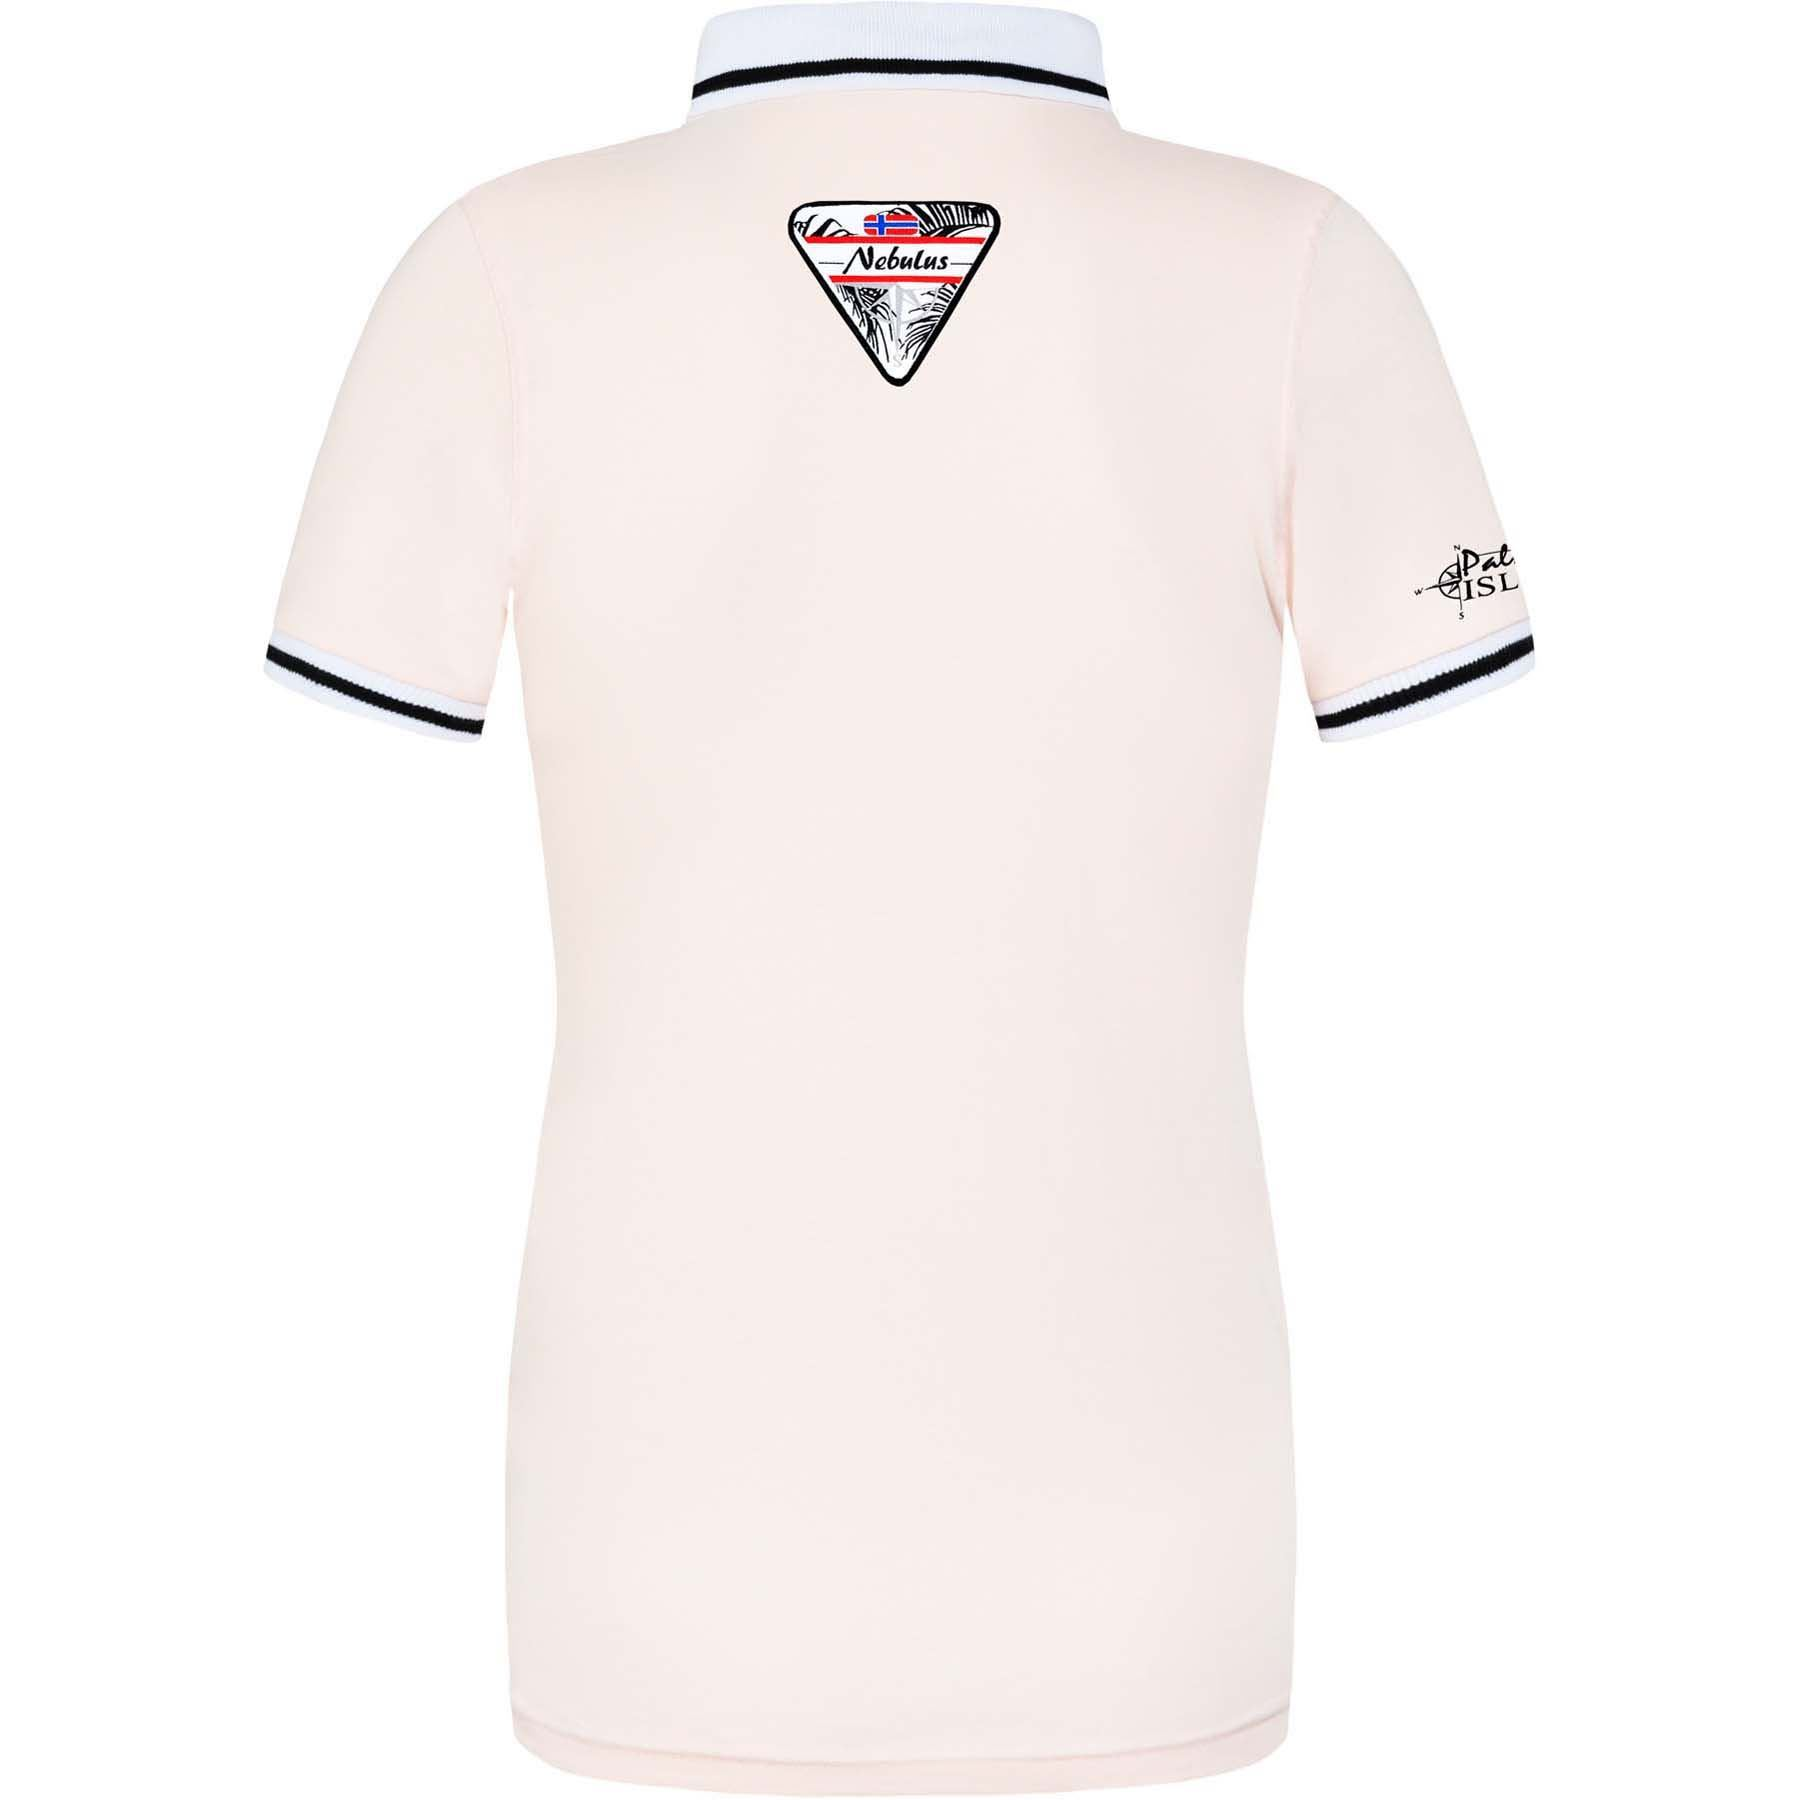 Polo Shirt Palms Women L 40 Pink P1143 02